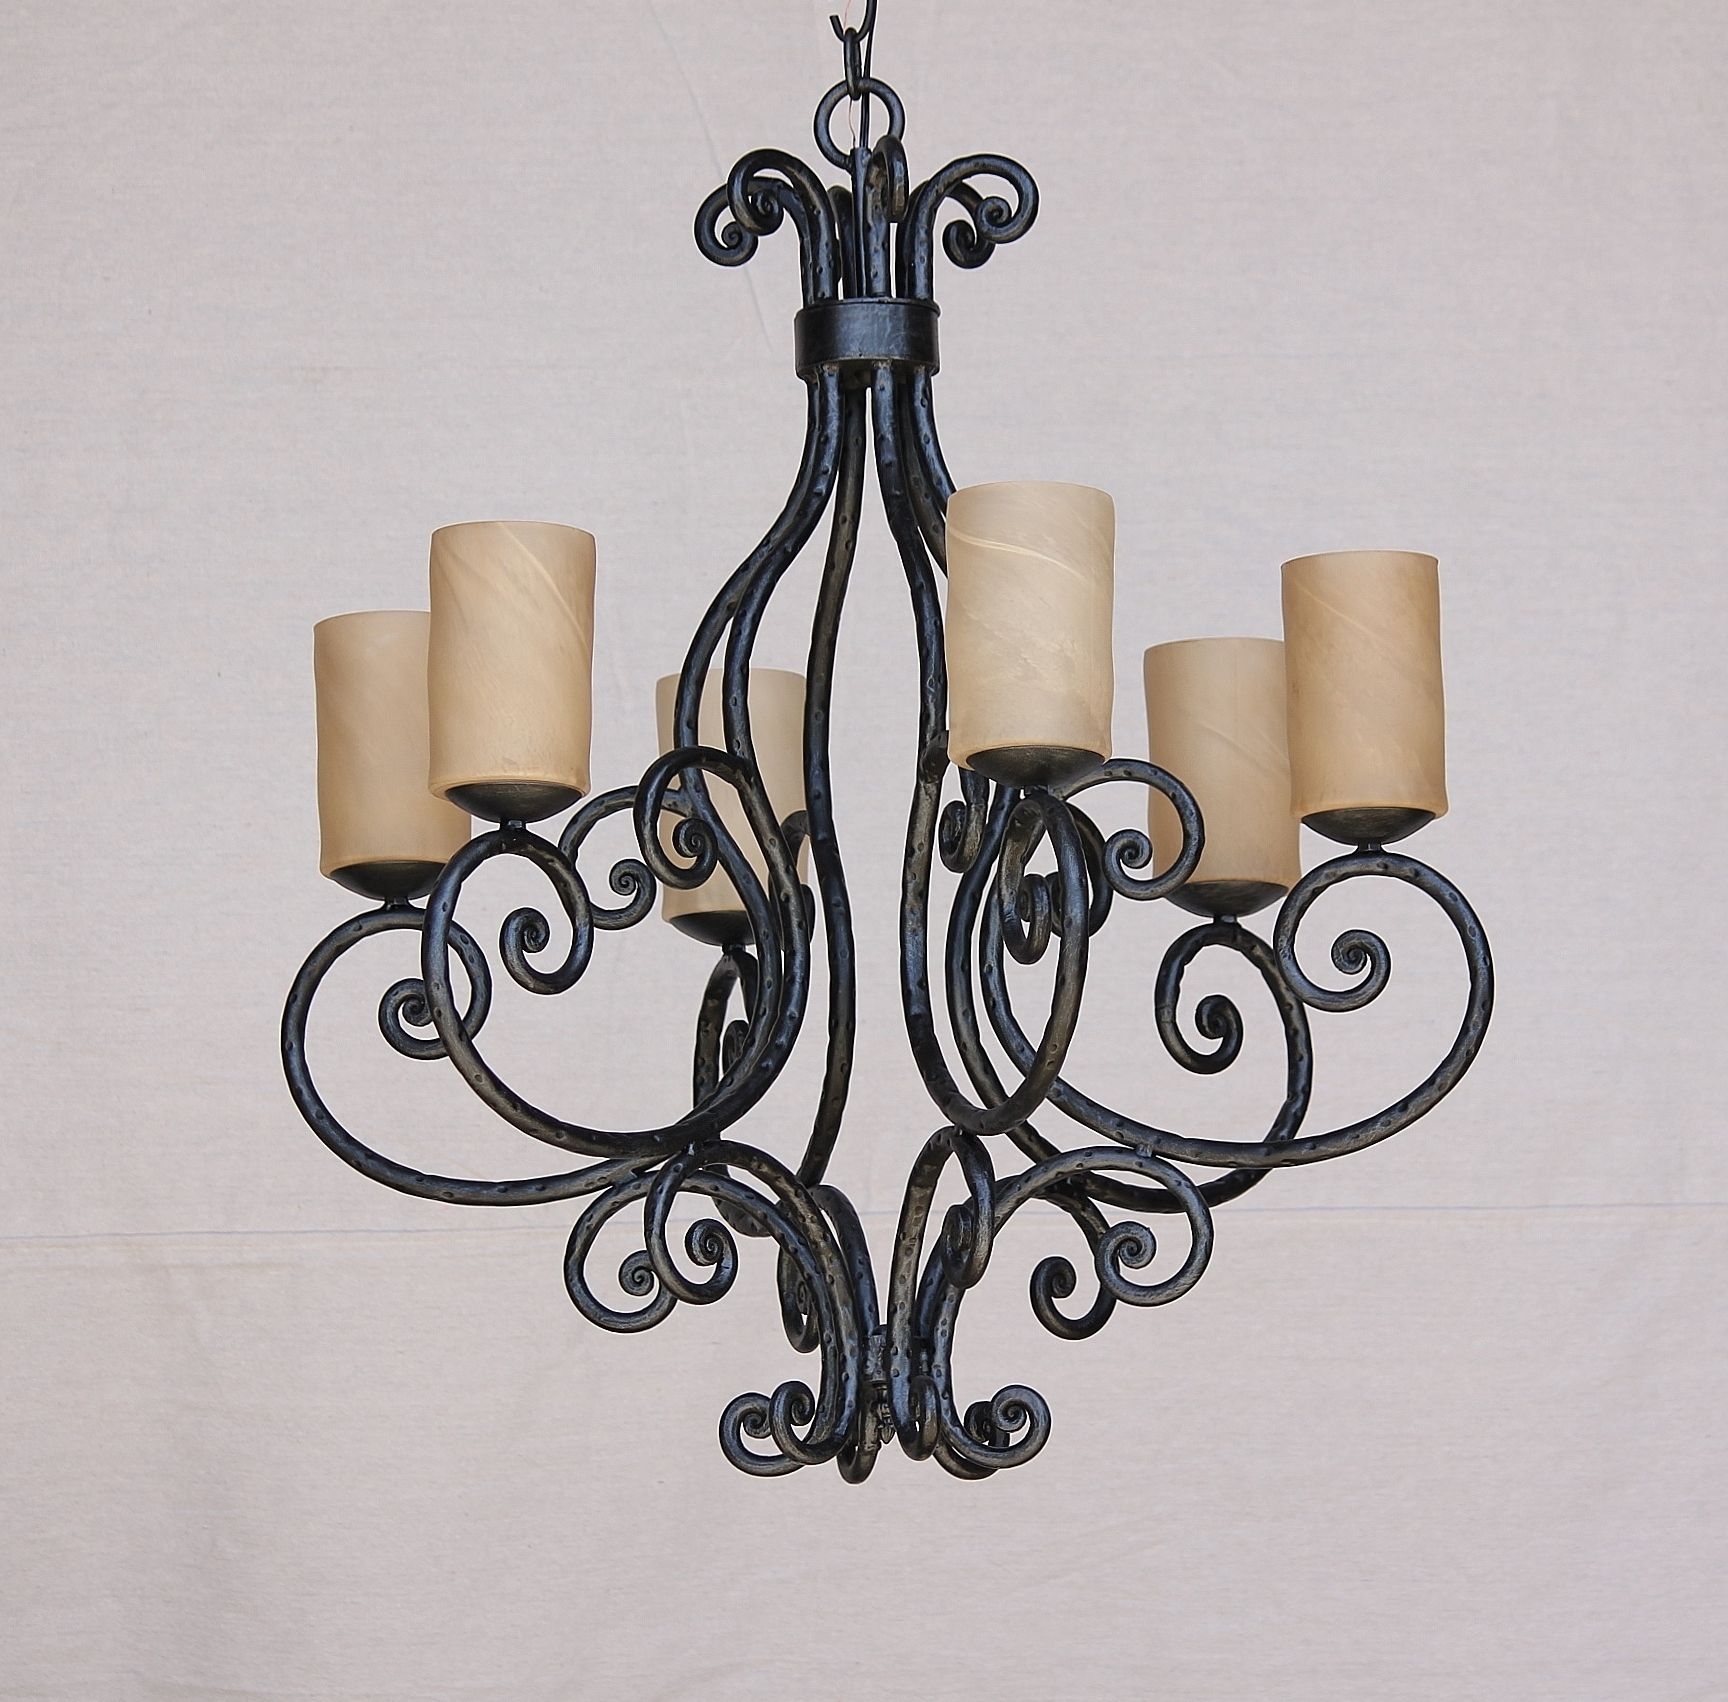 Lights of Tuscany 1614-6 Rustic Tuscan Style Chandelier